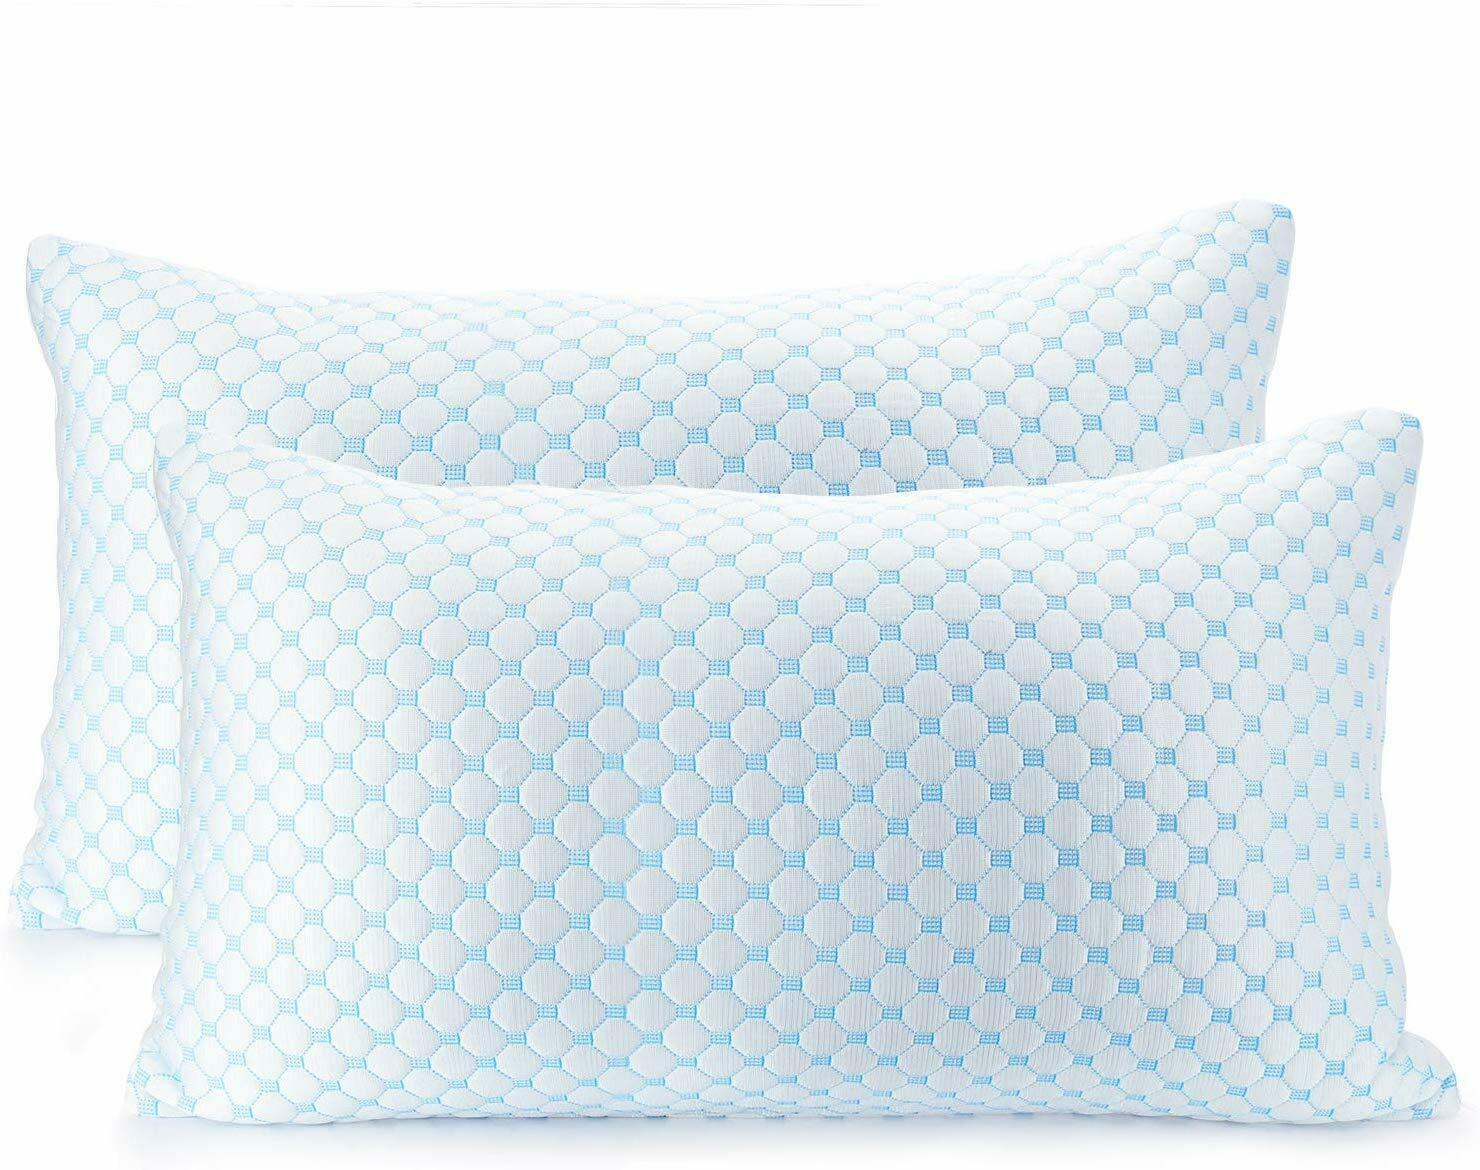 ❄Clara Clark Gel Infused Pillow Reversible Multi-Use Cool to Velvety - King,3 Pk CLARA CLARK - фотография #2